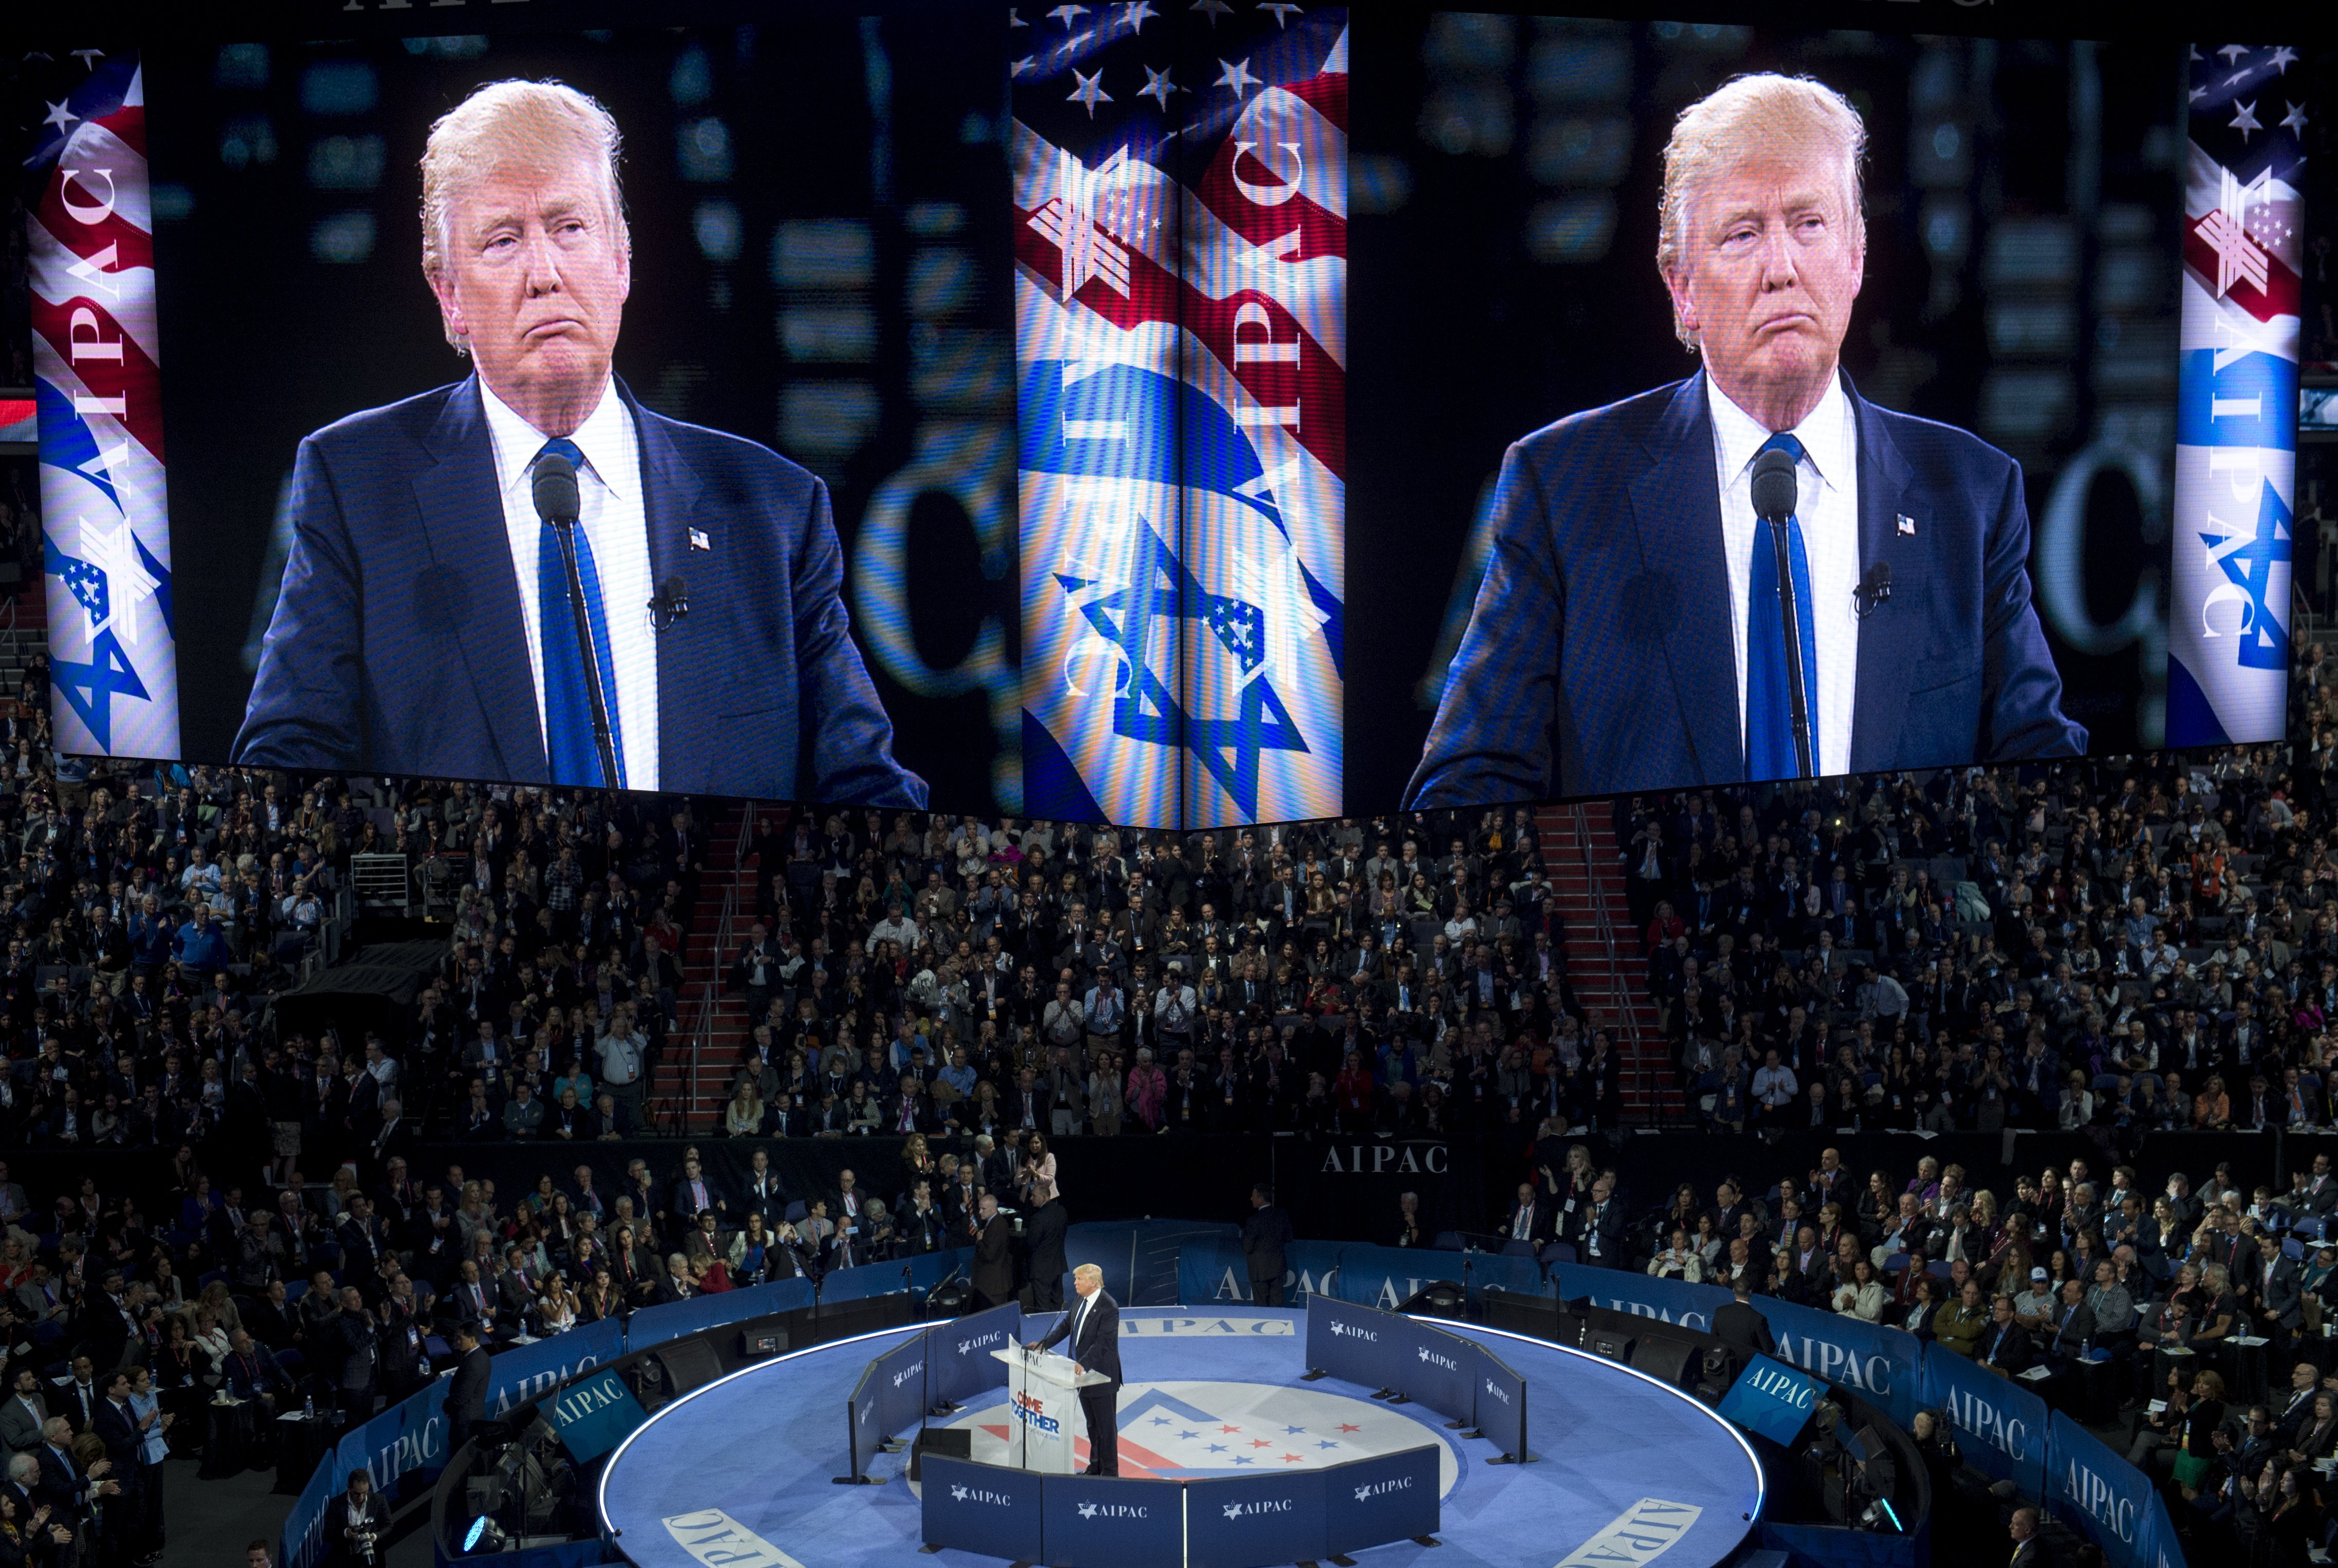 Donald Trump speaks during AIPAC in Washington, DC, on March 21, 2016.